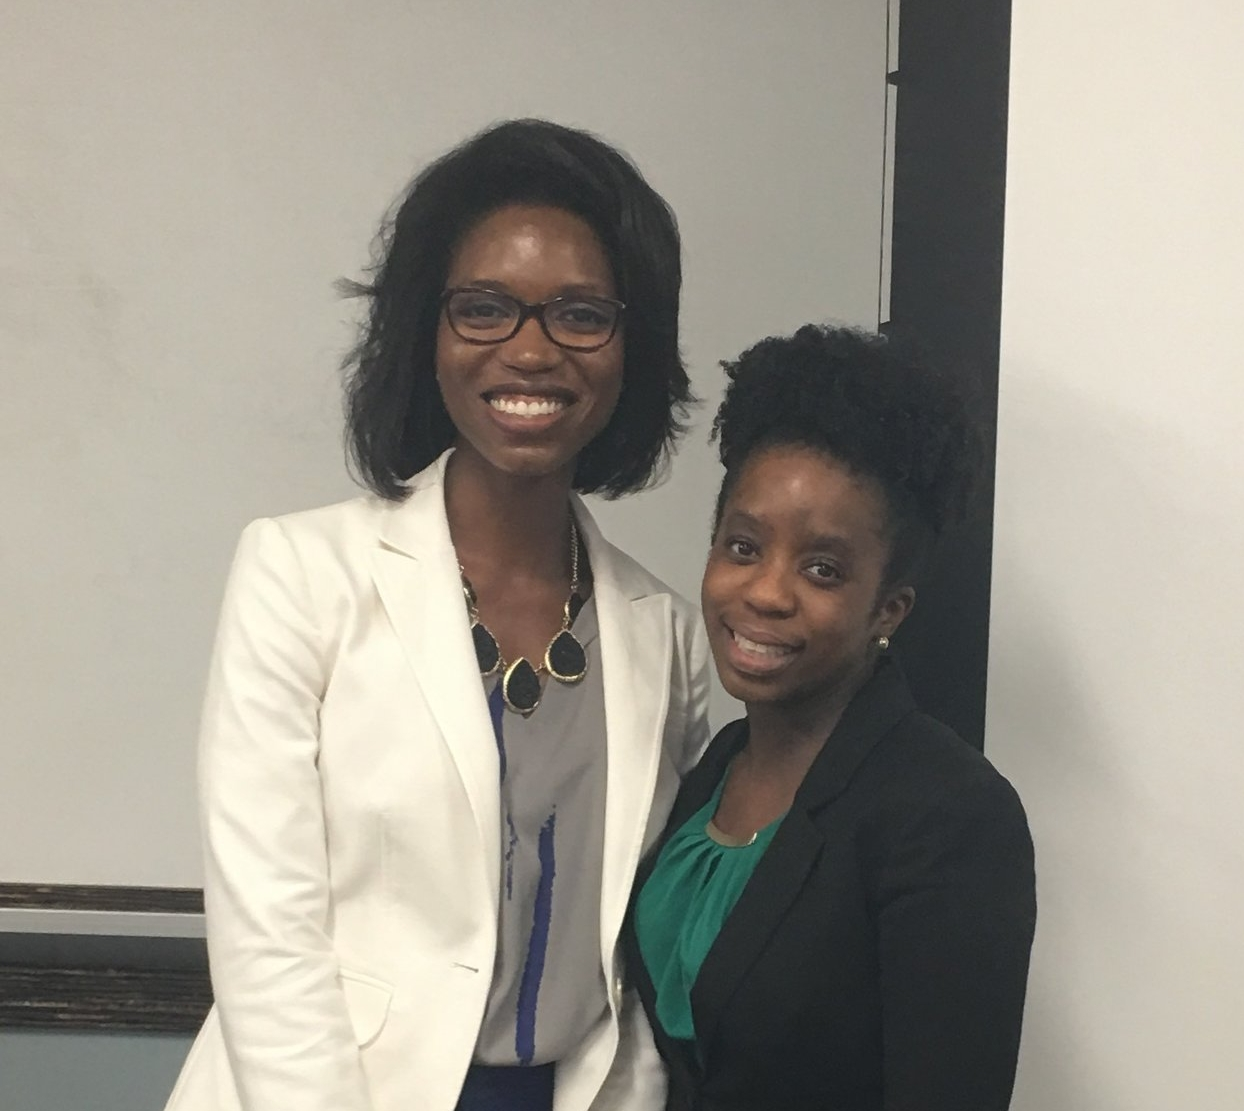 Congratulations to Loneke and Candice! - Loneke Blackman Carr (Sisters in Health) and Candice Alick (TEAM Study) successfully passed the oral defense of their dissertation studies this July 2017.